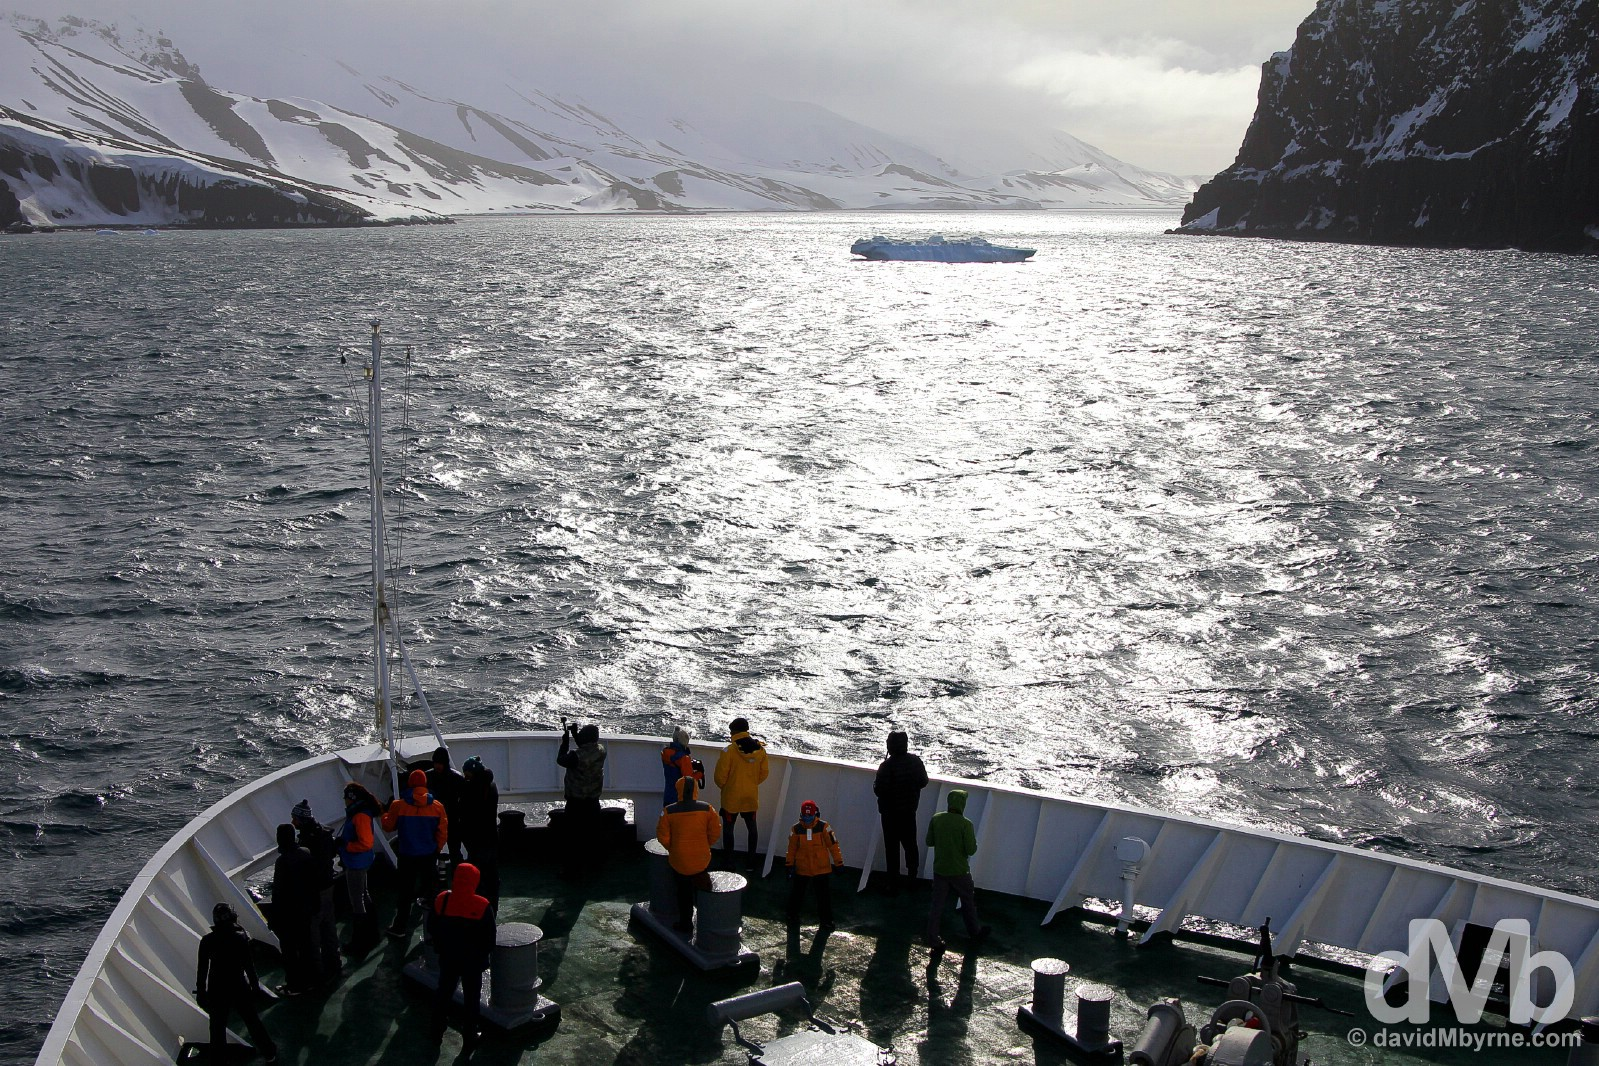 Blocked. Outside Neptune's Bellows, the narrow entrance to Deception Island, Antarctica. November 29, 2015.